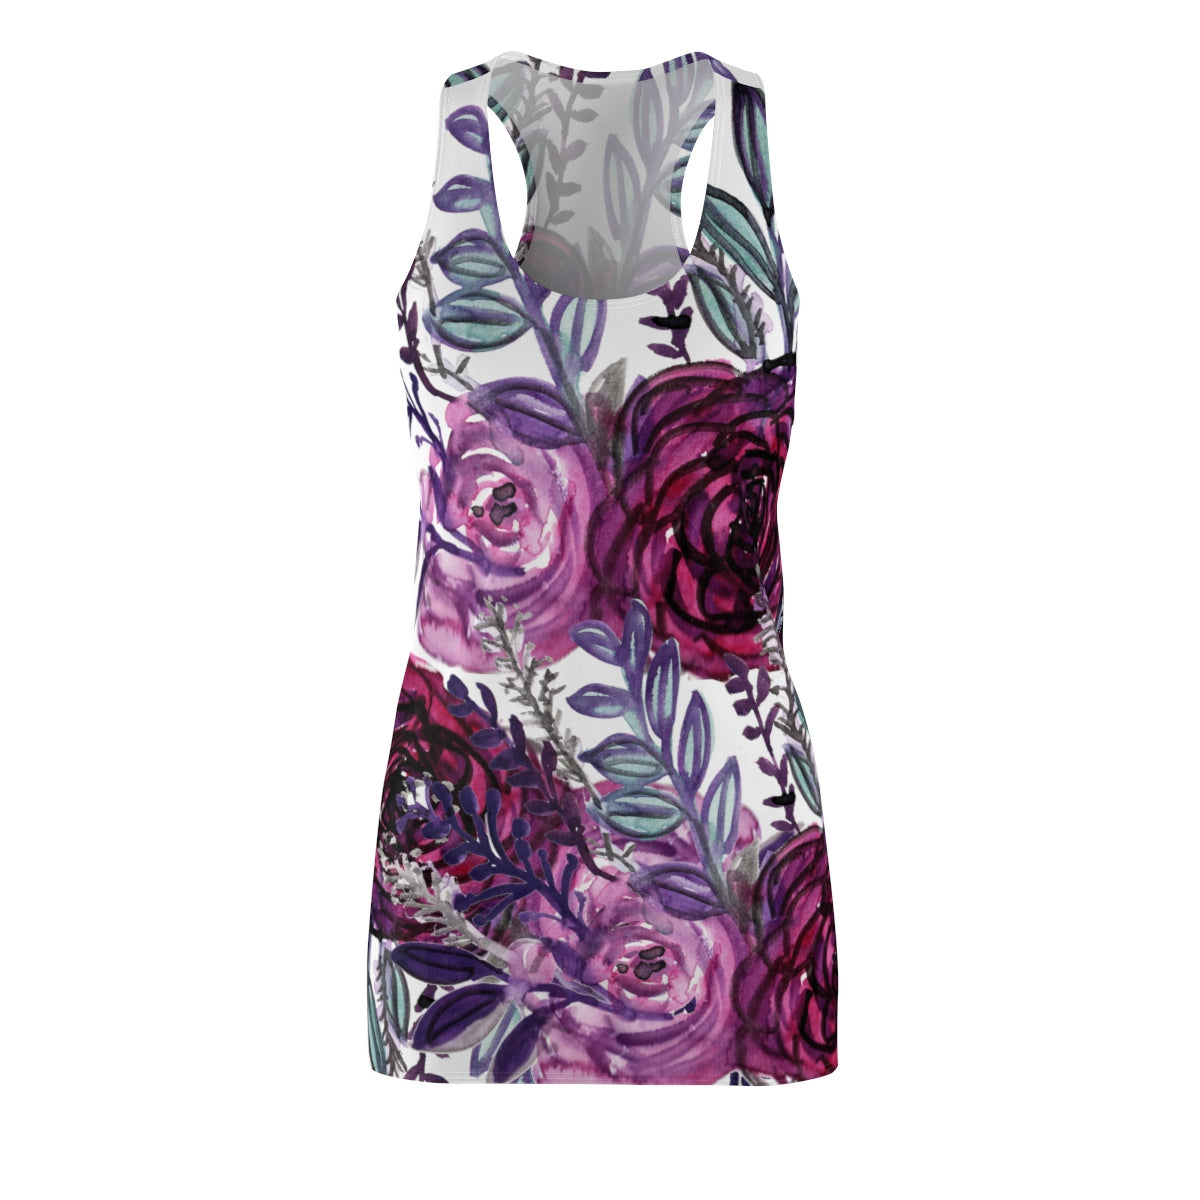 White & Purple Floral Print Designer Premium Women's Long Racerback Dress - Made in USA-Women's Sleeveless Dress-L-Heidi Kimura Art LLC